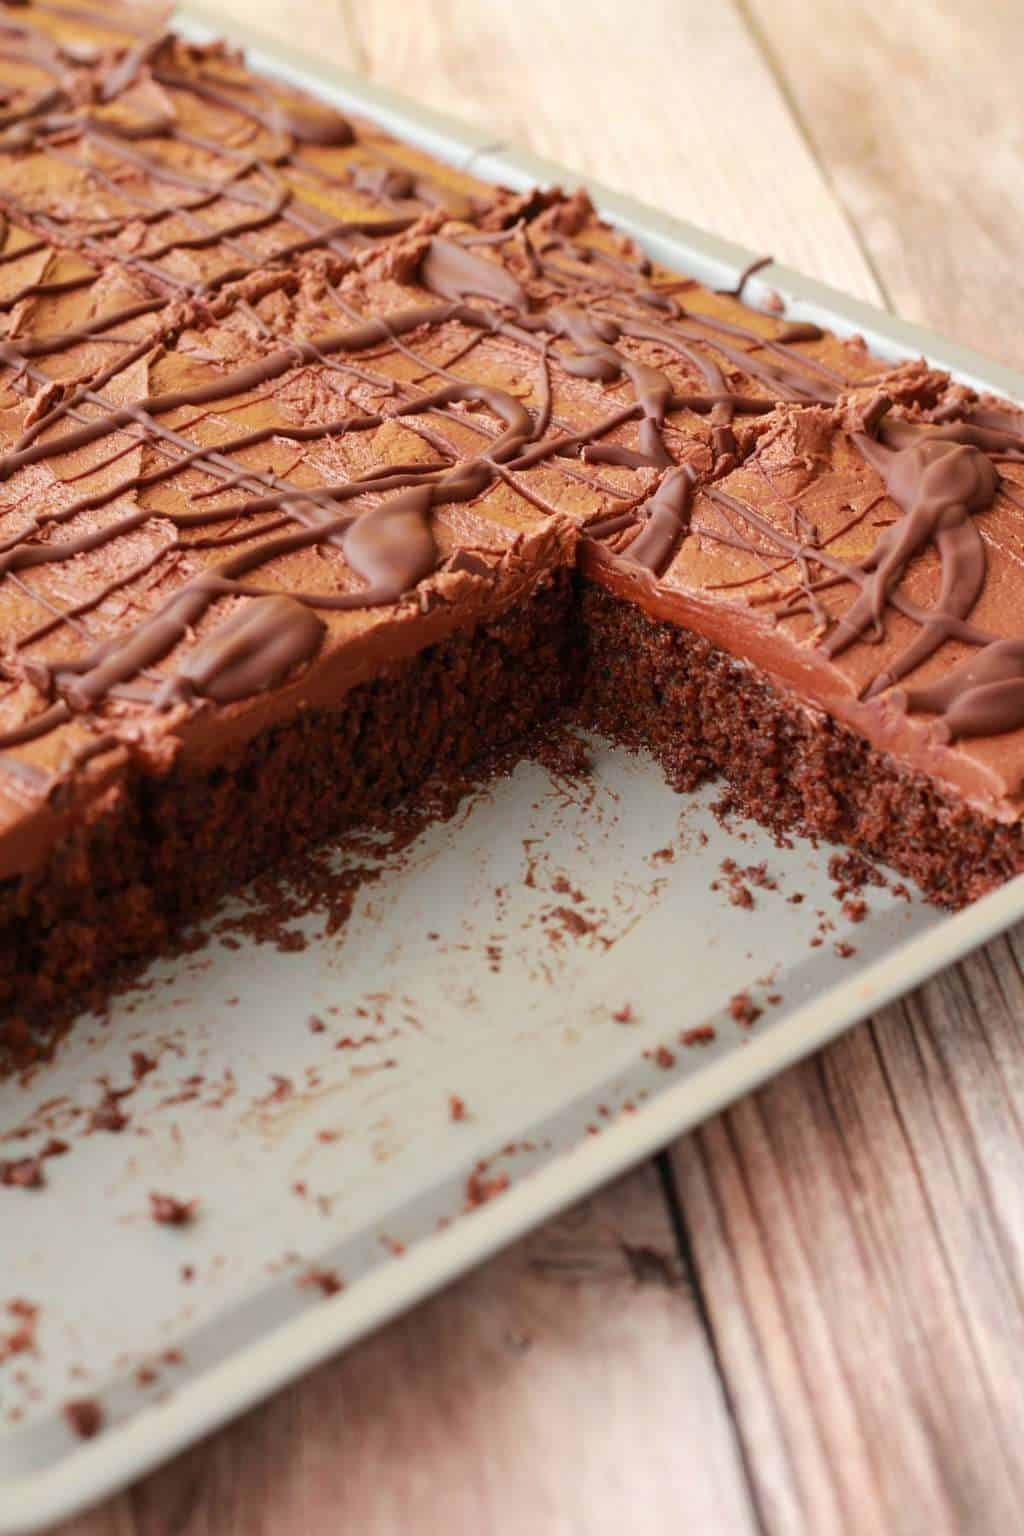 Chocolate Sheet Cake with Chocolate Fudge Frosting #vegan #lovingitvegan #vegancake #dessert #sheetcake